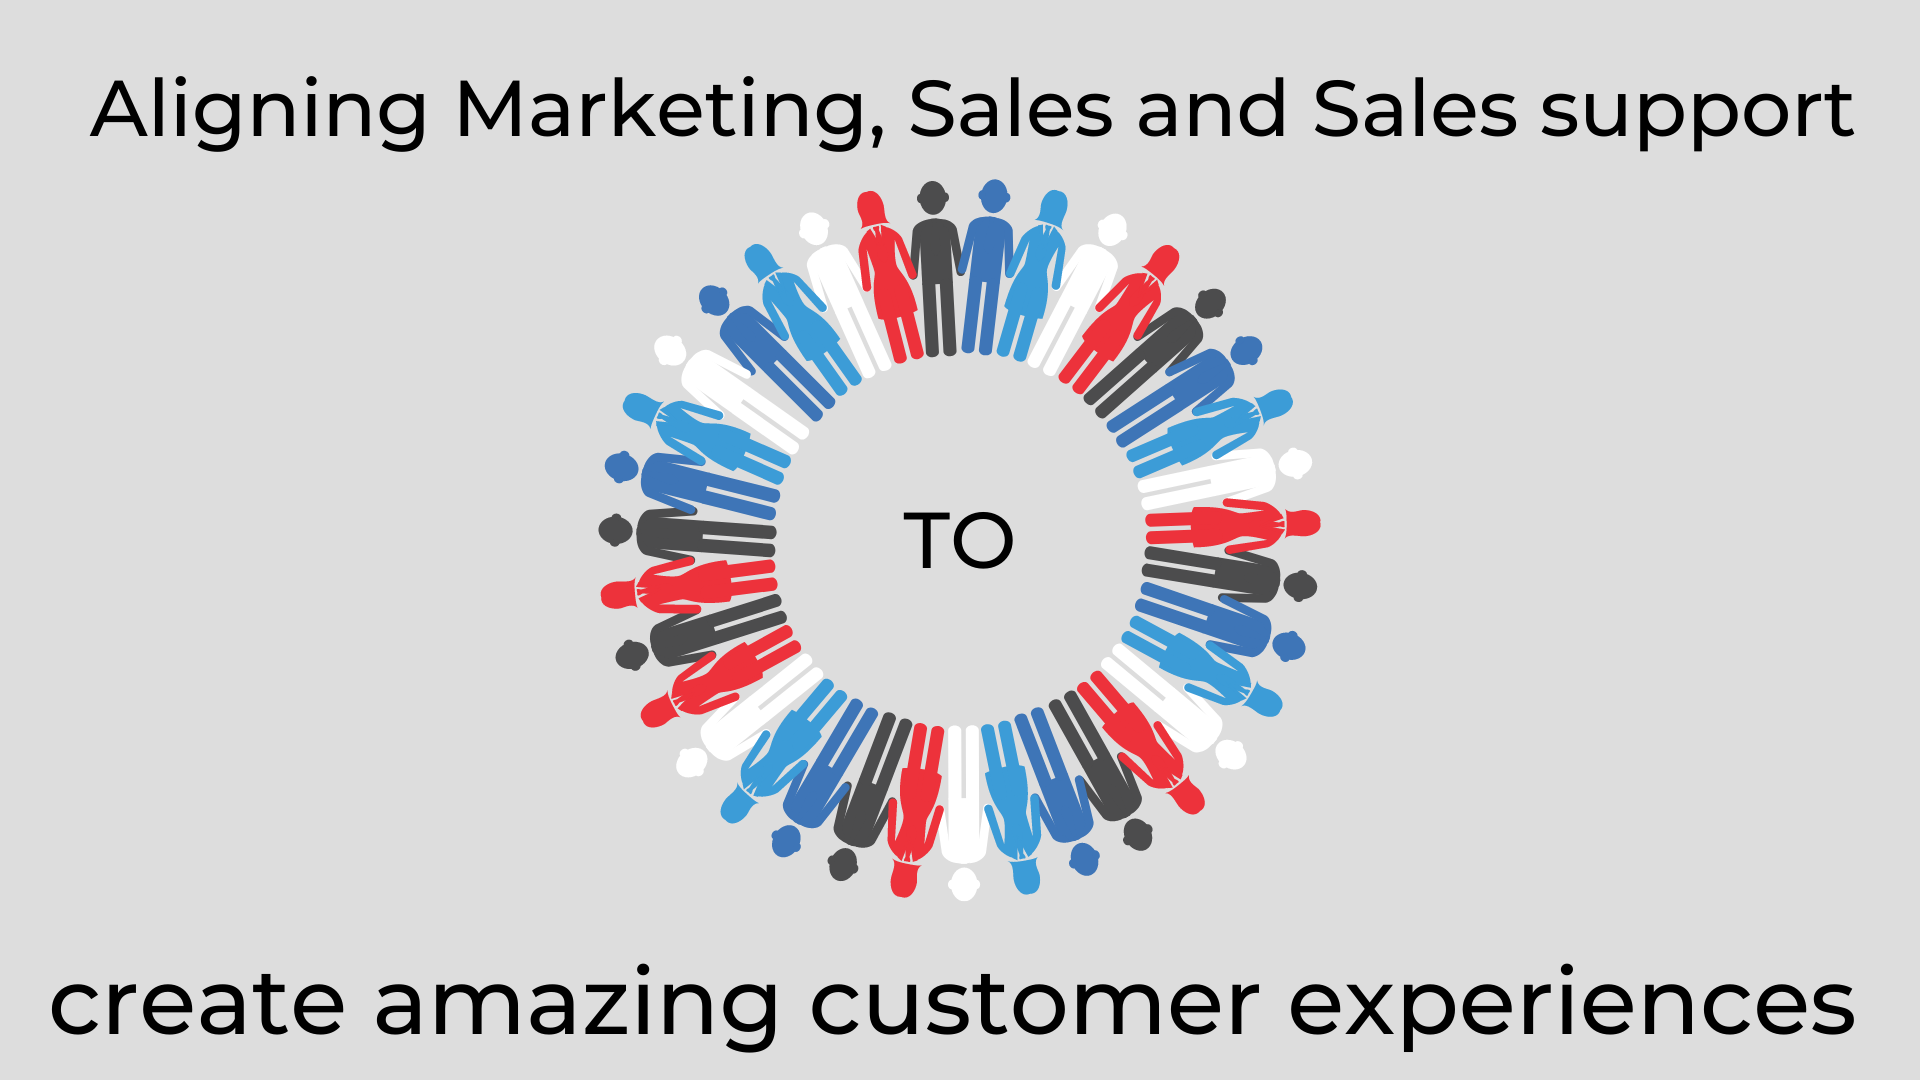 Alighing Marketing, Sales and Sales support to create amazing customer experiences